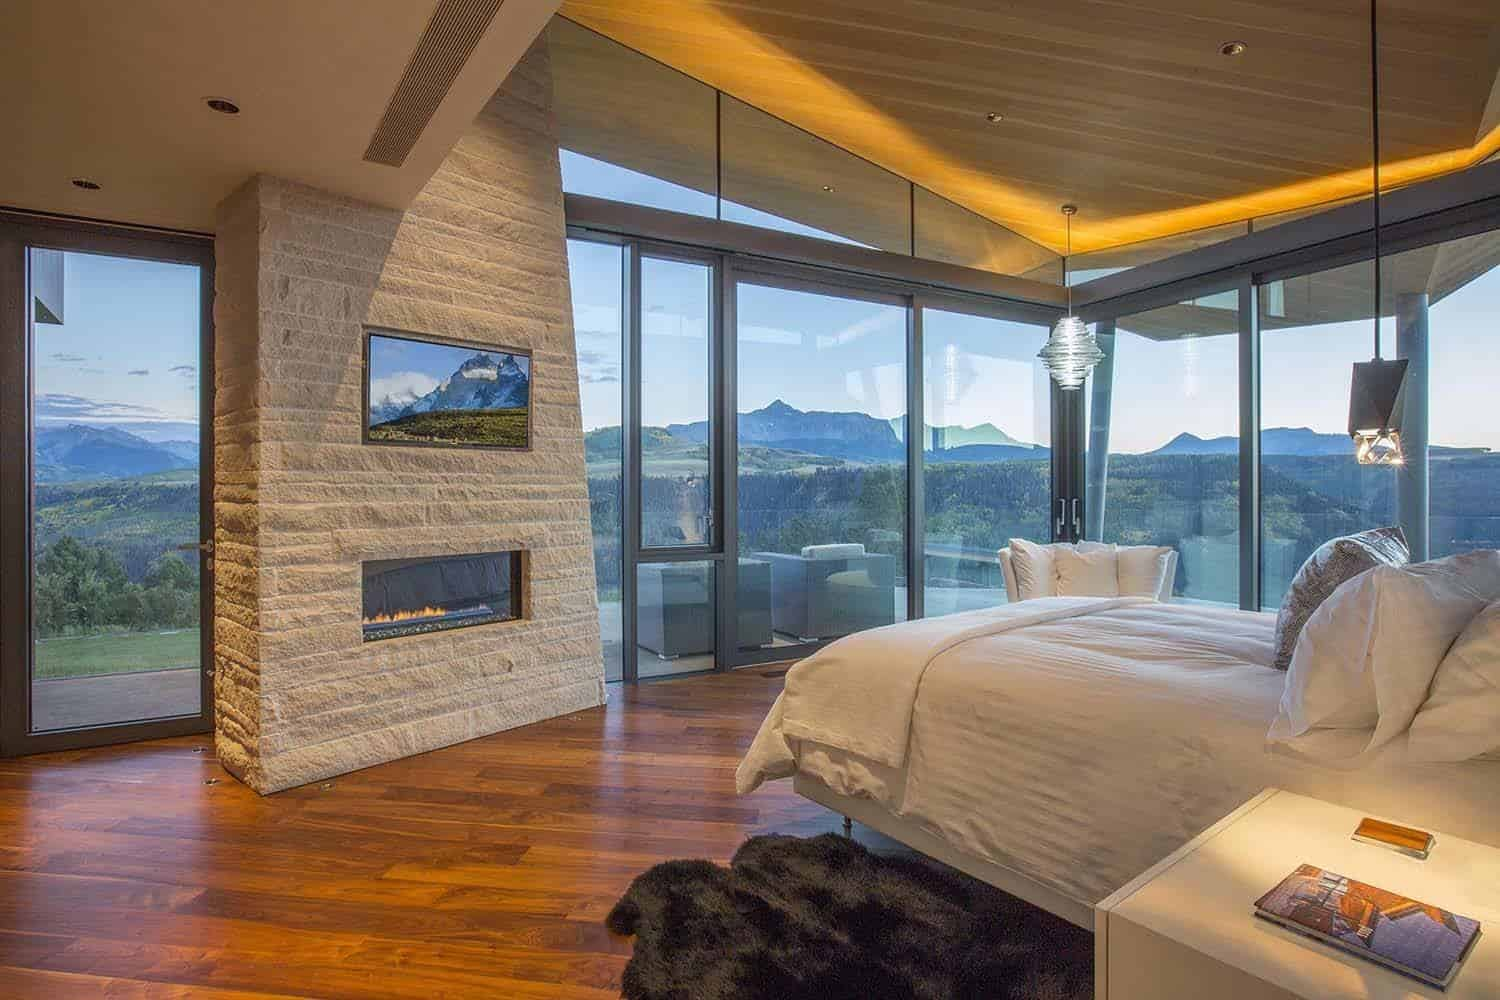 Modern-Residence-Colorado-Poss Architecture-30-1 Kindesign